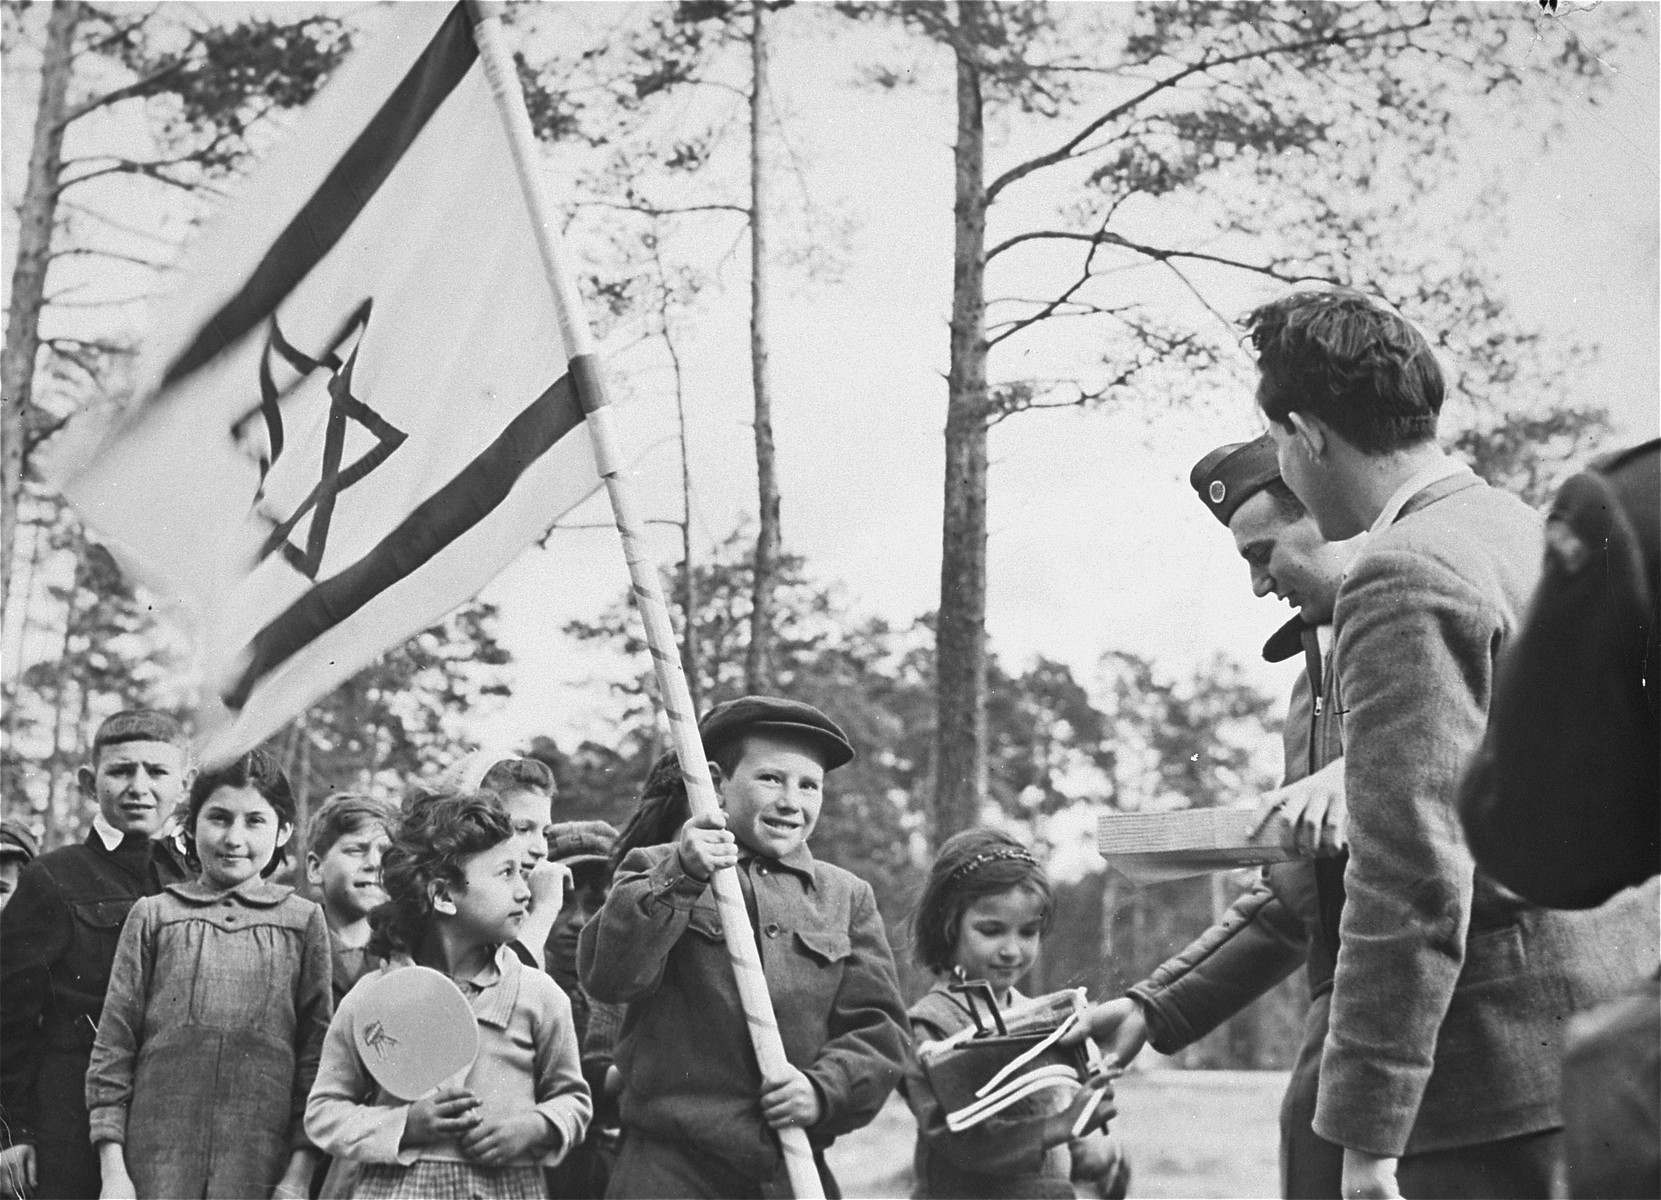 Jewish children at the Foehrenwald DP camp line up while NCWC distributes recreational and educational supplies to the camp members.   Among those pictured are Lilly Swidler (second from the left) and Malka Lancman (now Marlene Stevens) (third from the left).